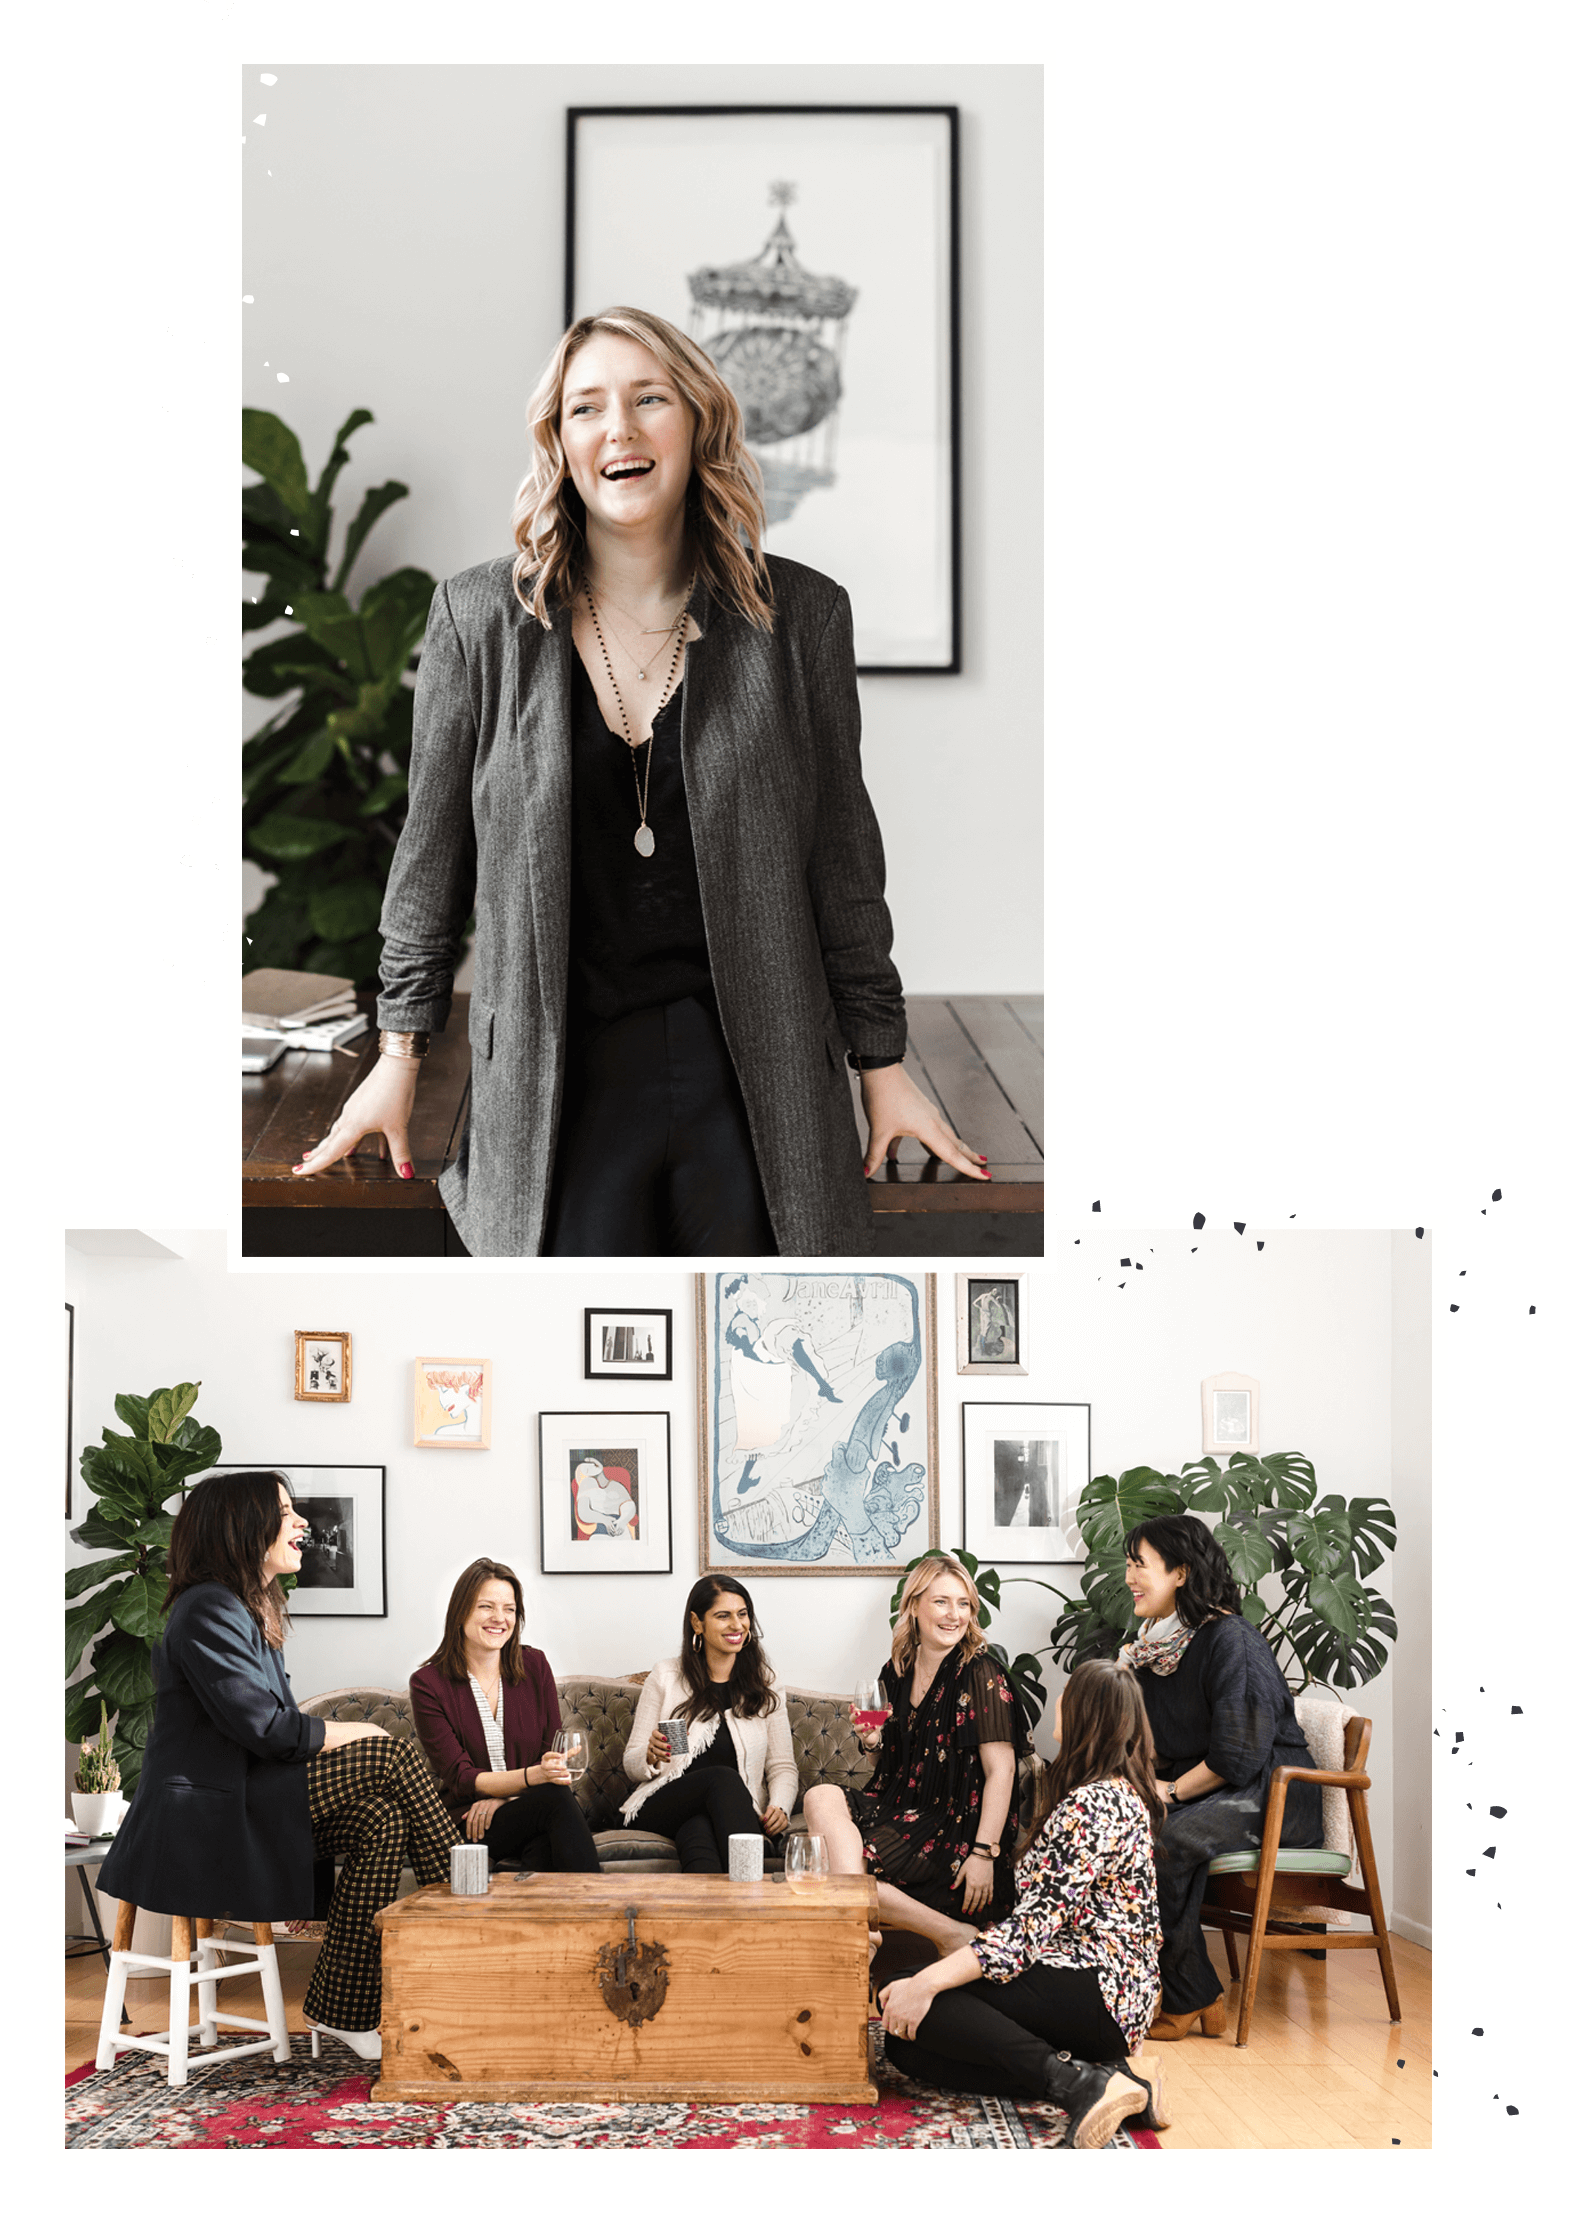 2 photos. Megan at the top sitting on a table. The second photo shows the women gathered on couches and laughing